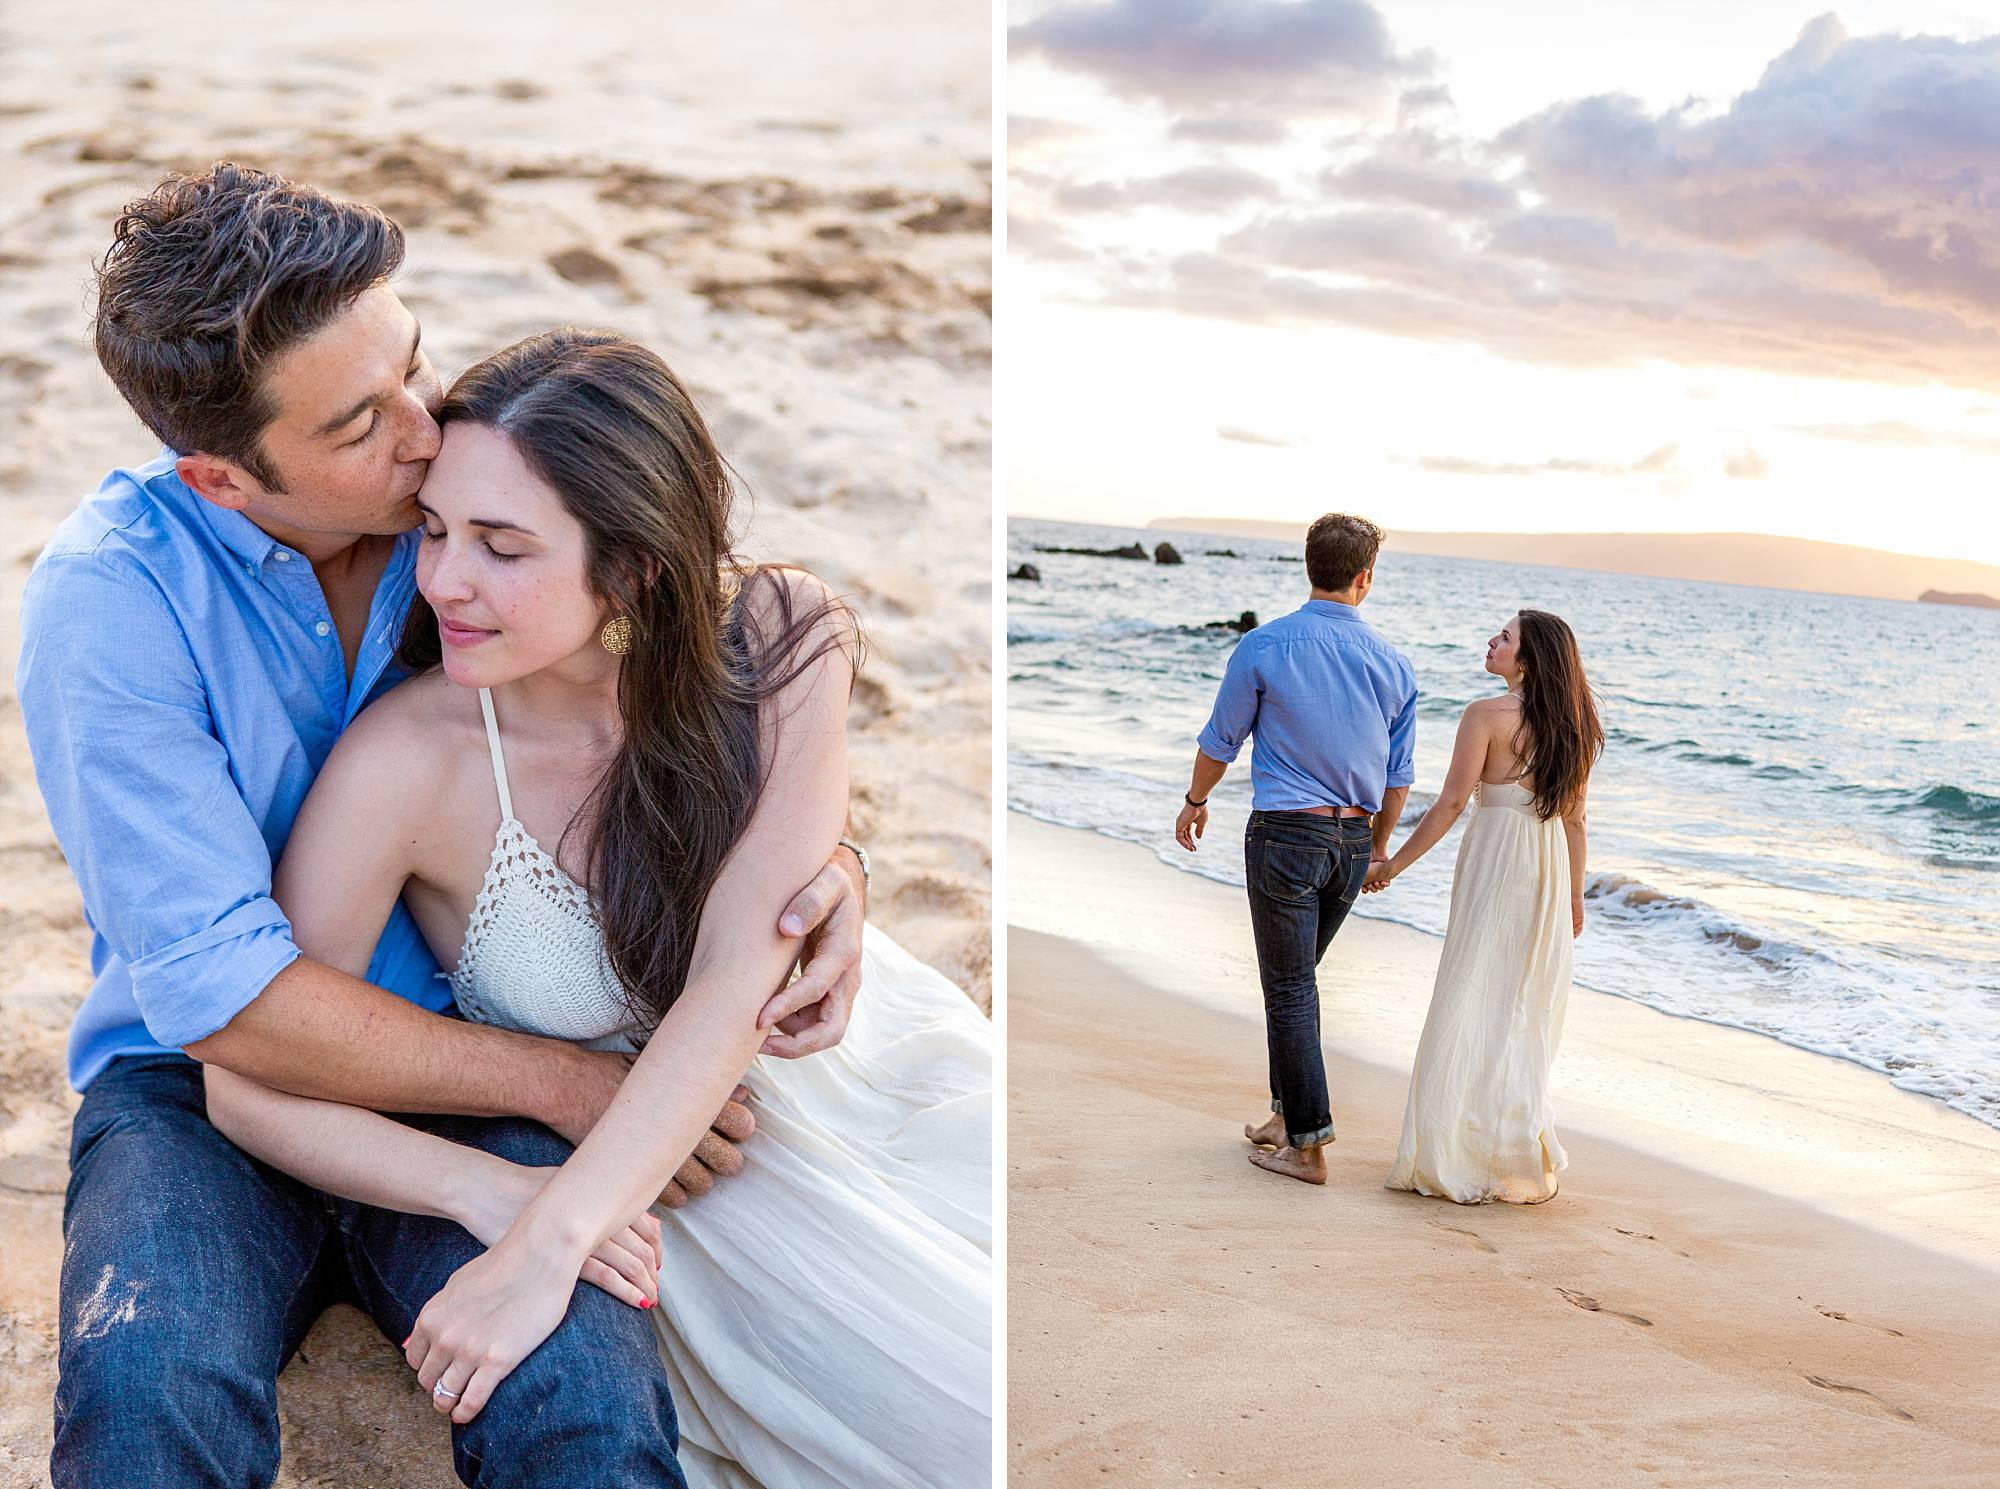 sweethearts cuddling on beach after engagement